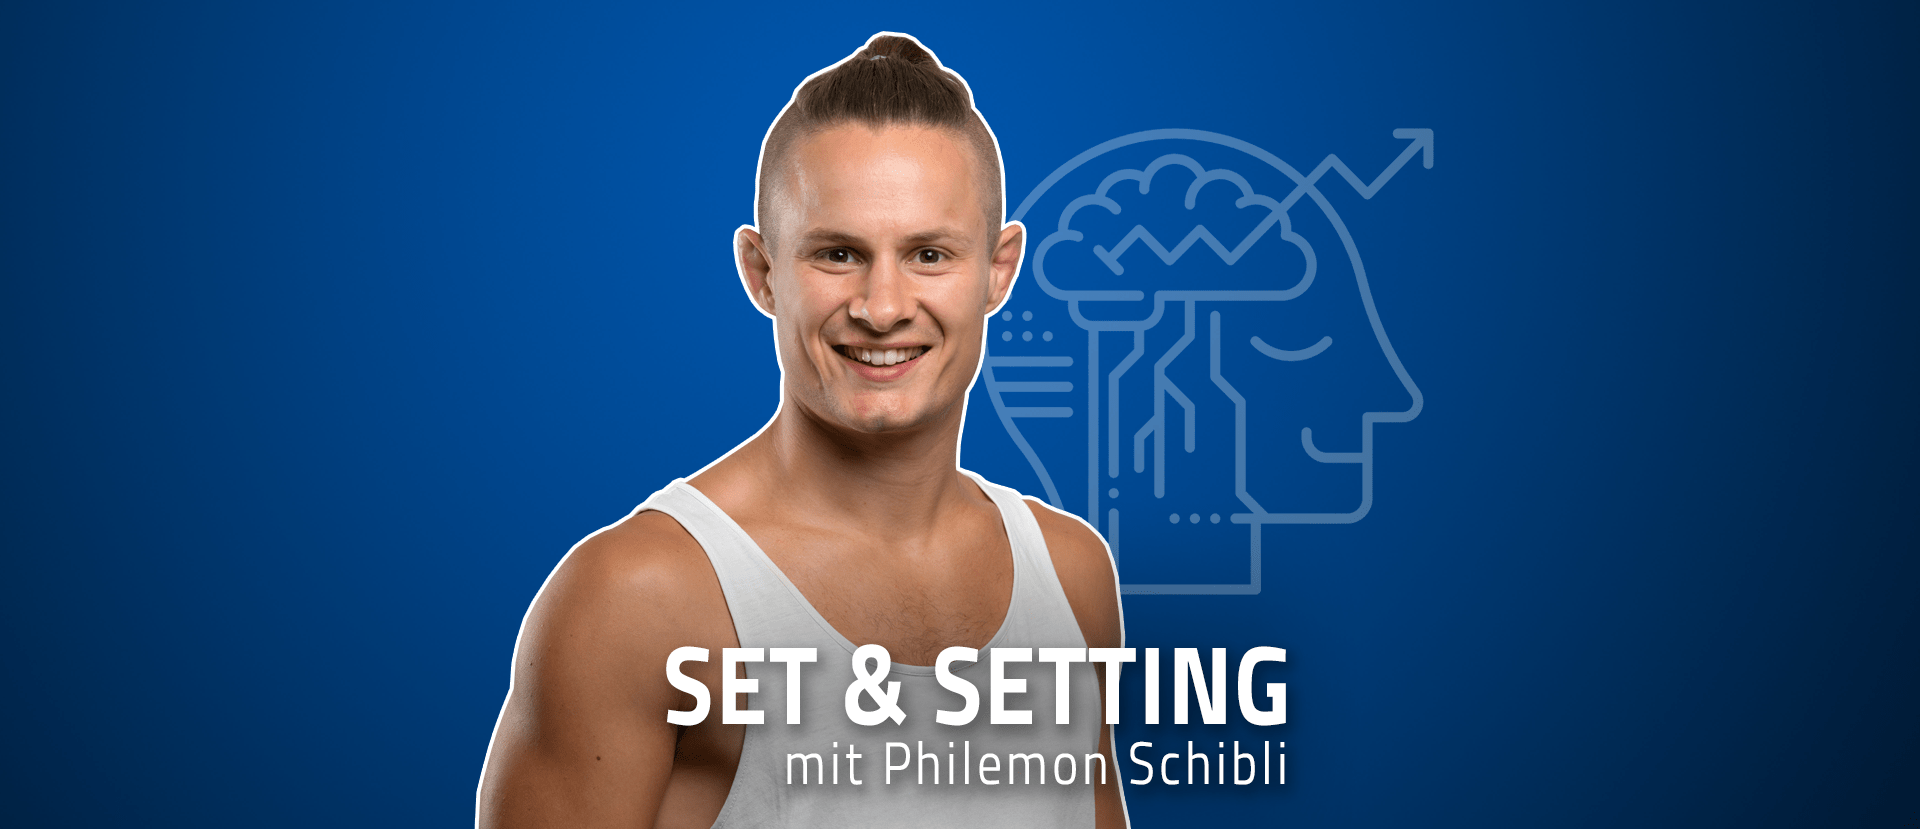 Philemon Schibli Set Setting Psychedelika Pilze Jascha Renner Podcast Retreat